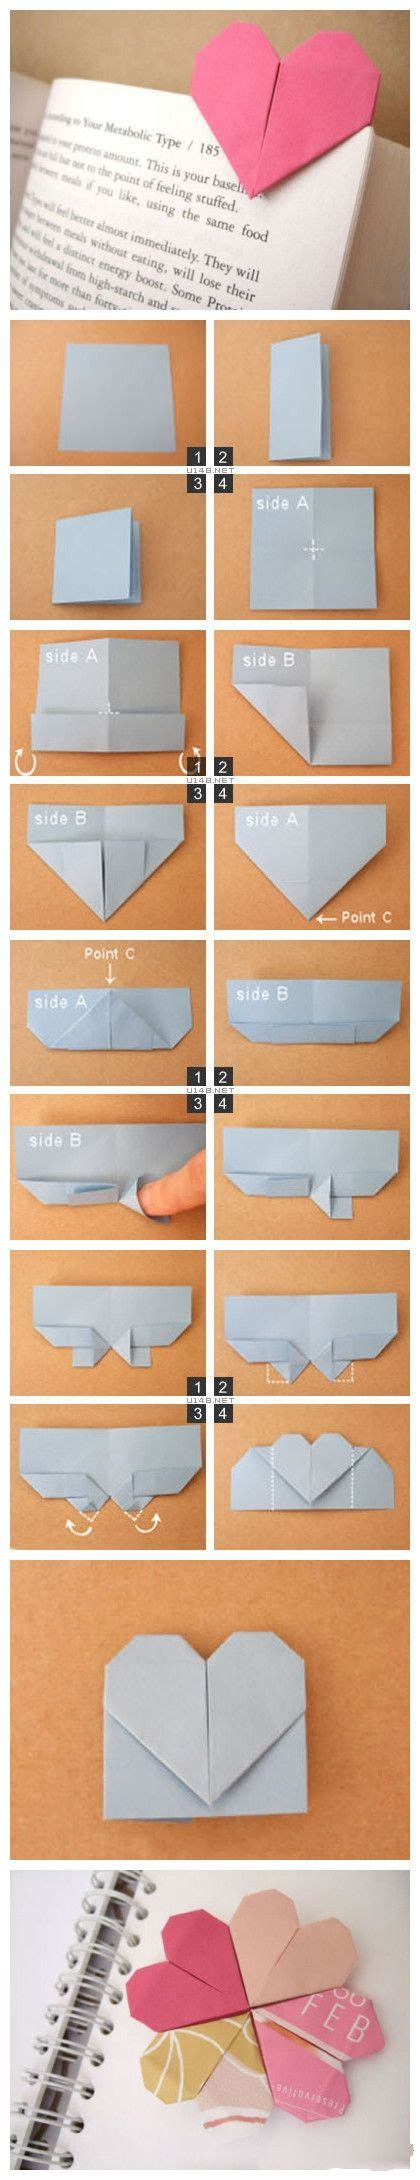 Origami Bookmark Tutorial - simple origami tutorial can be used as a